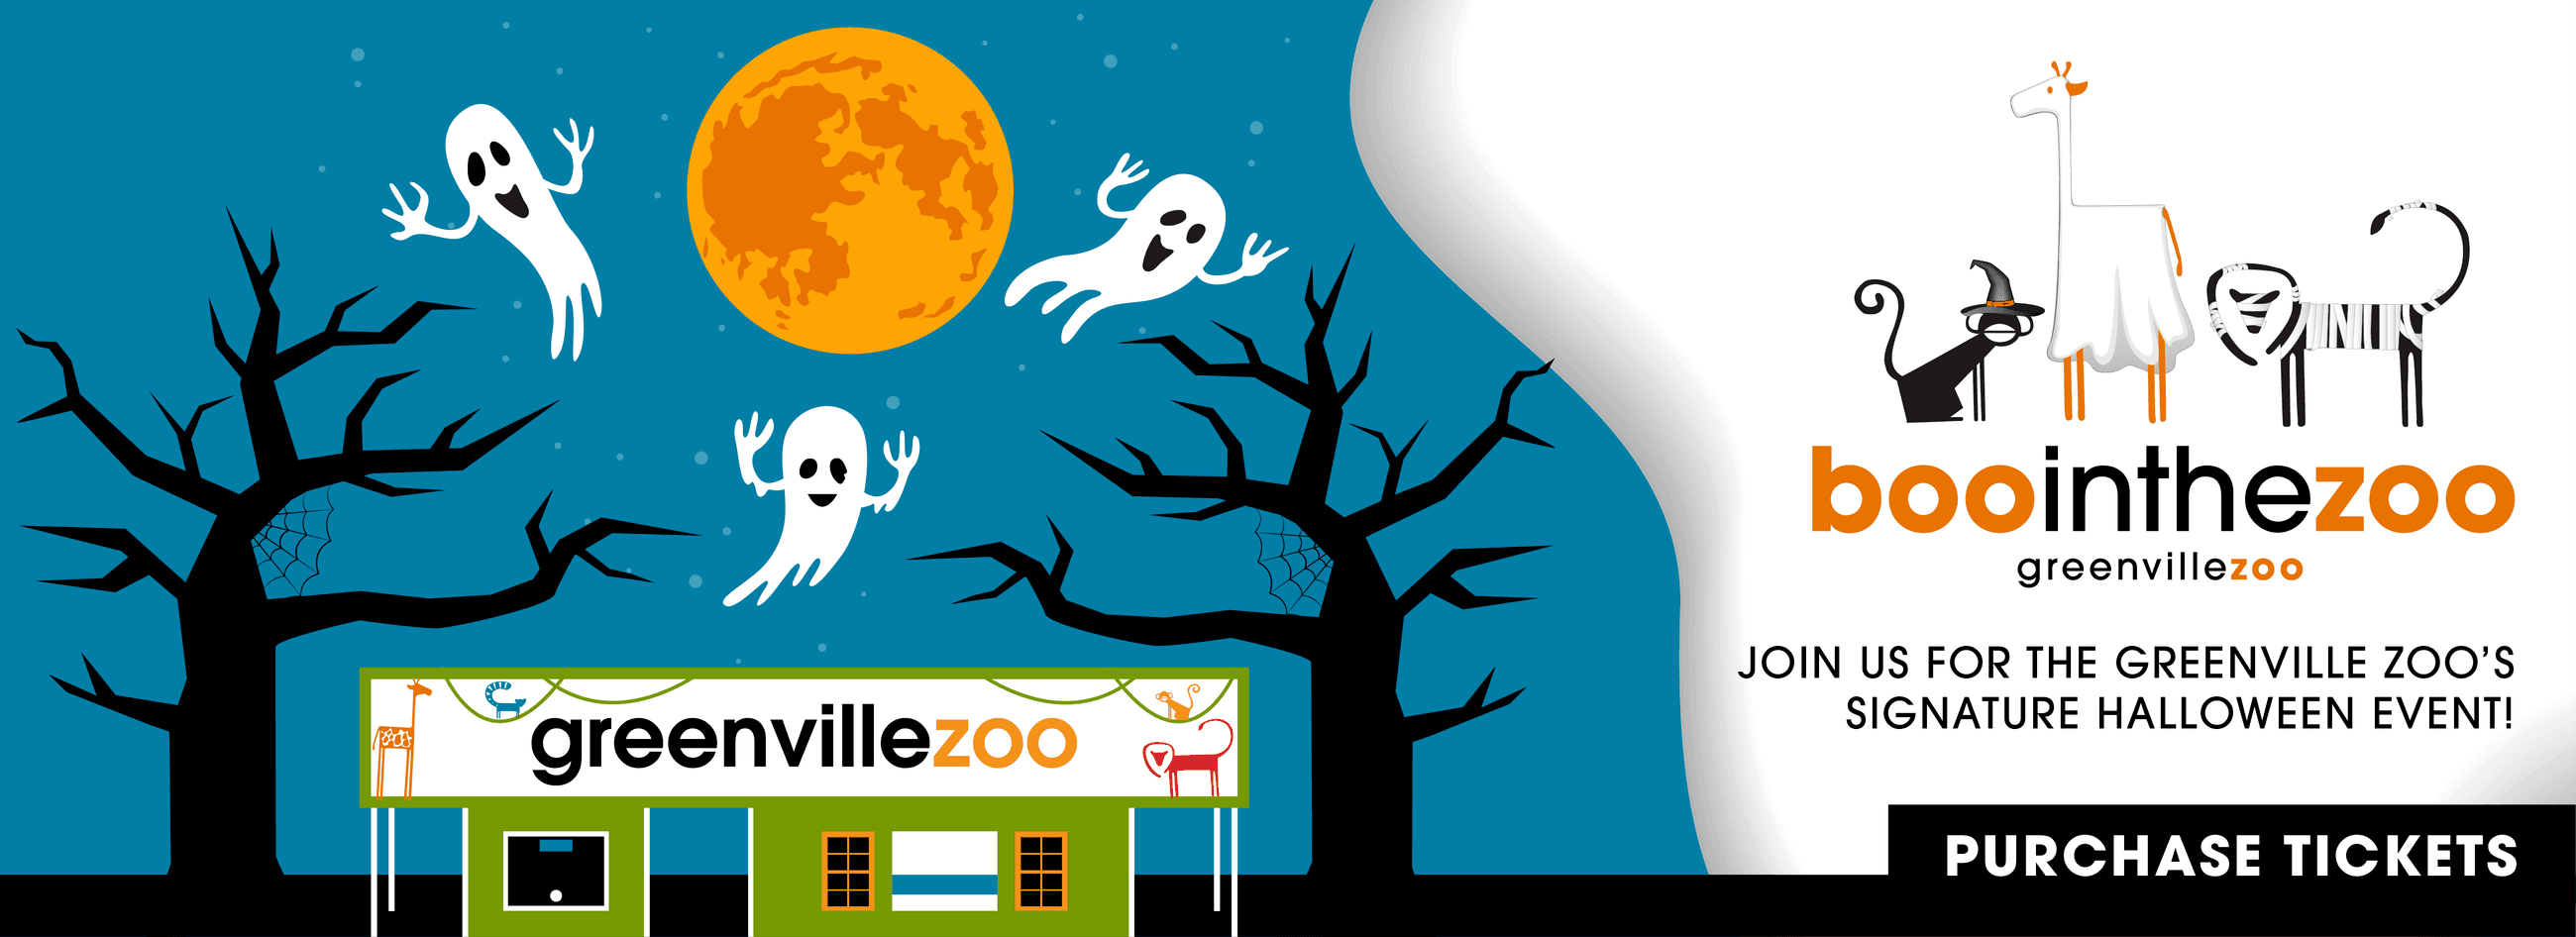 Boo in the Zoo banner